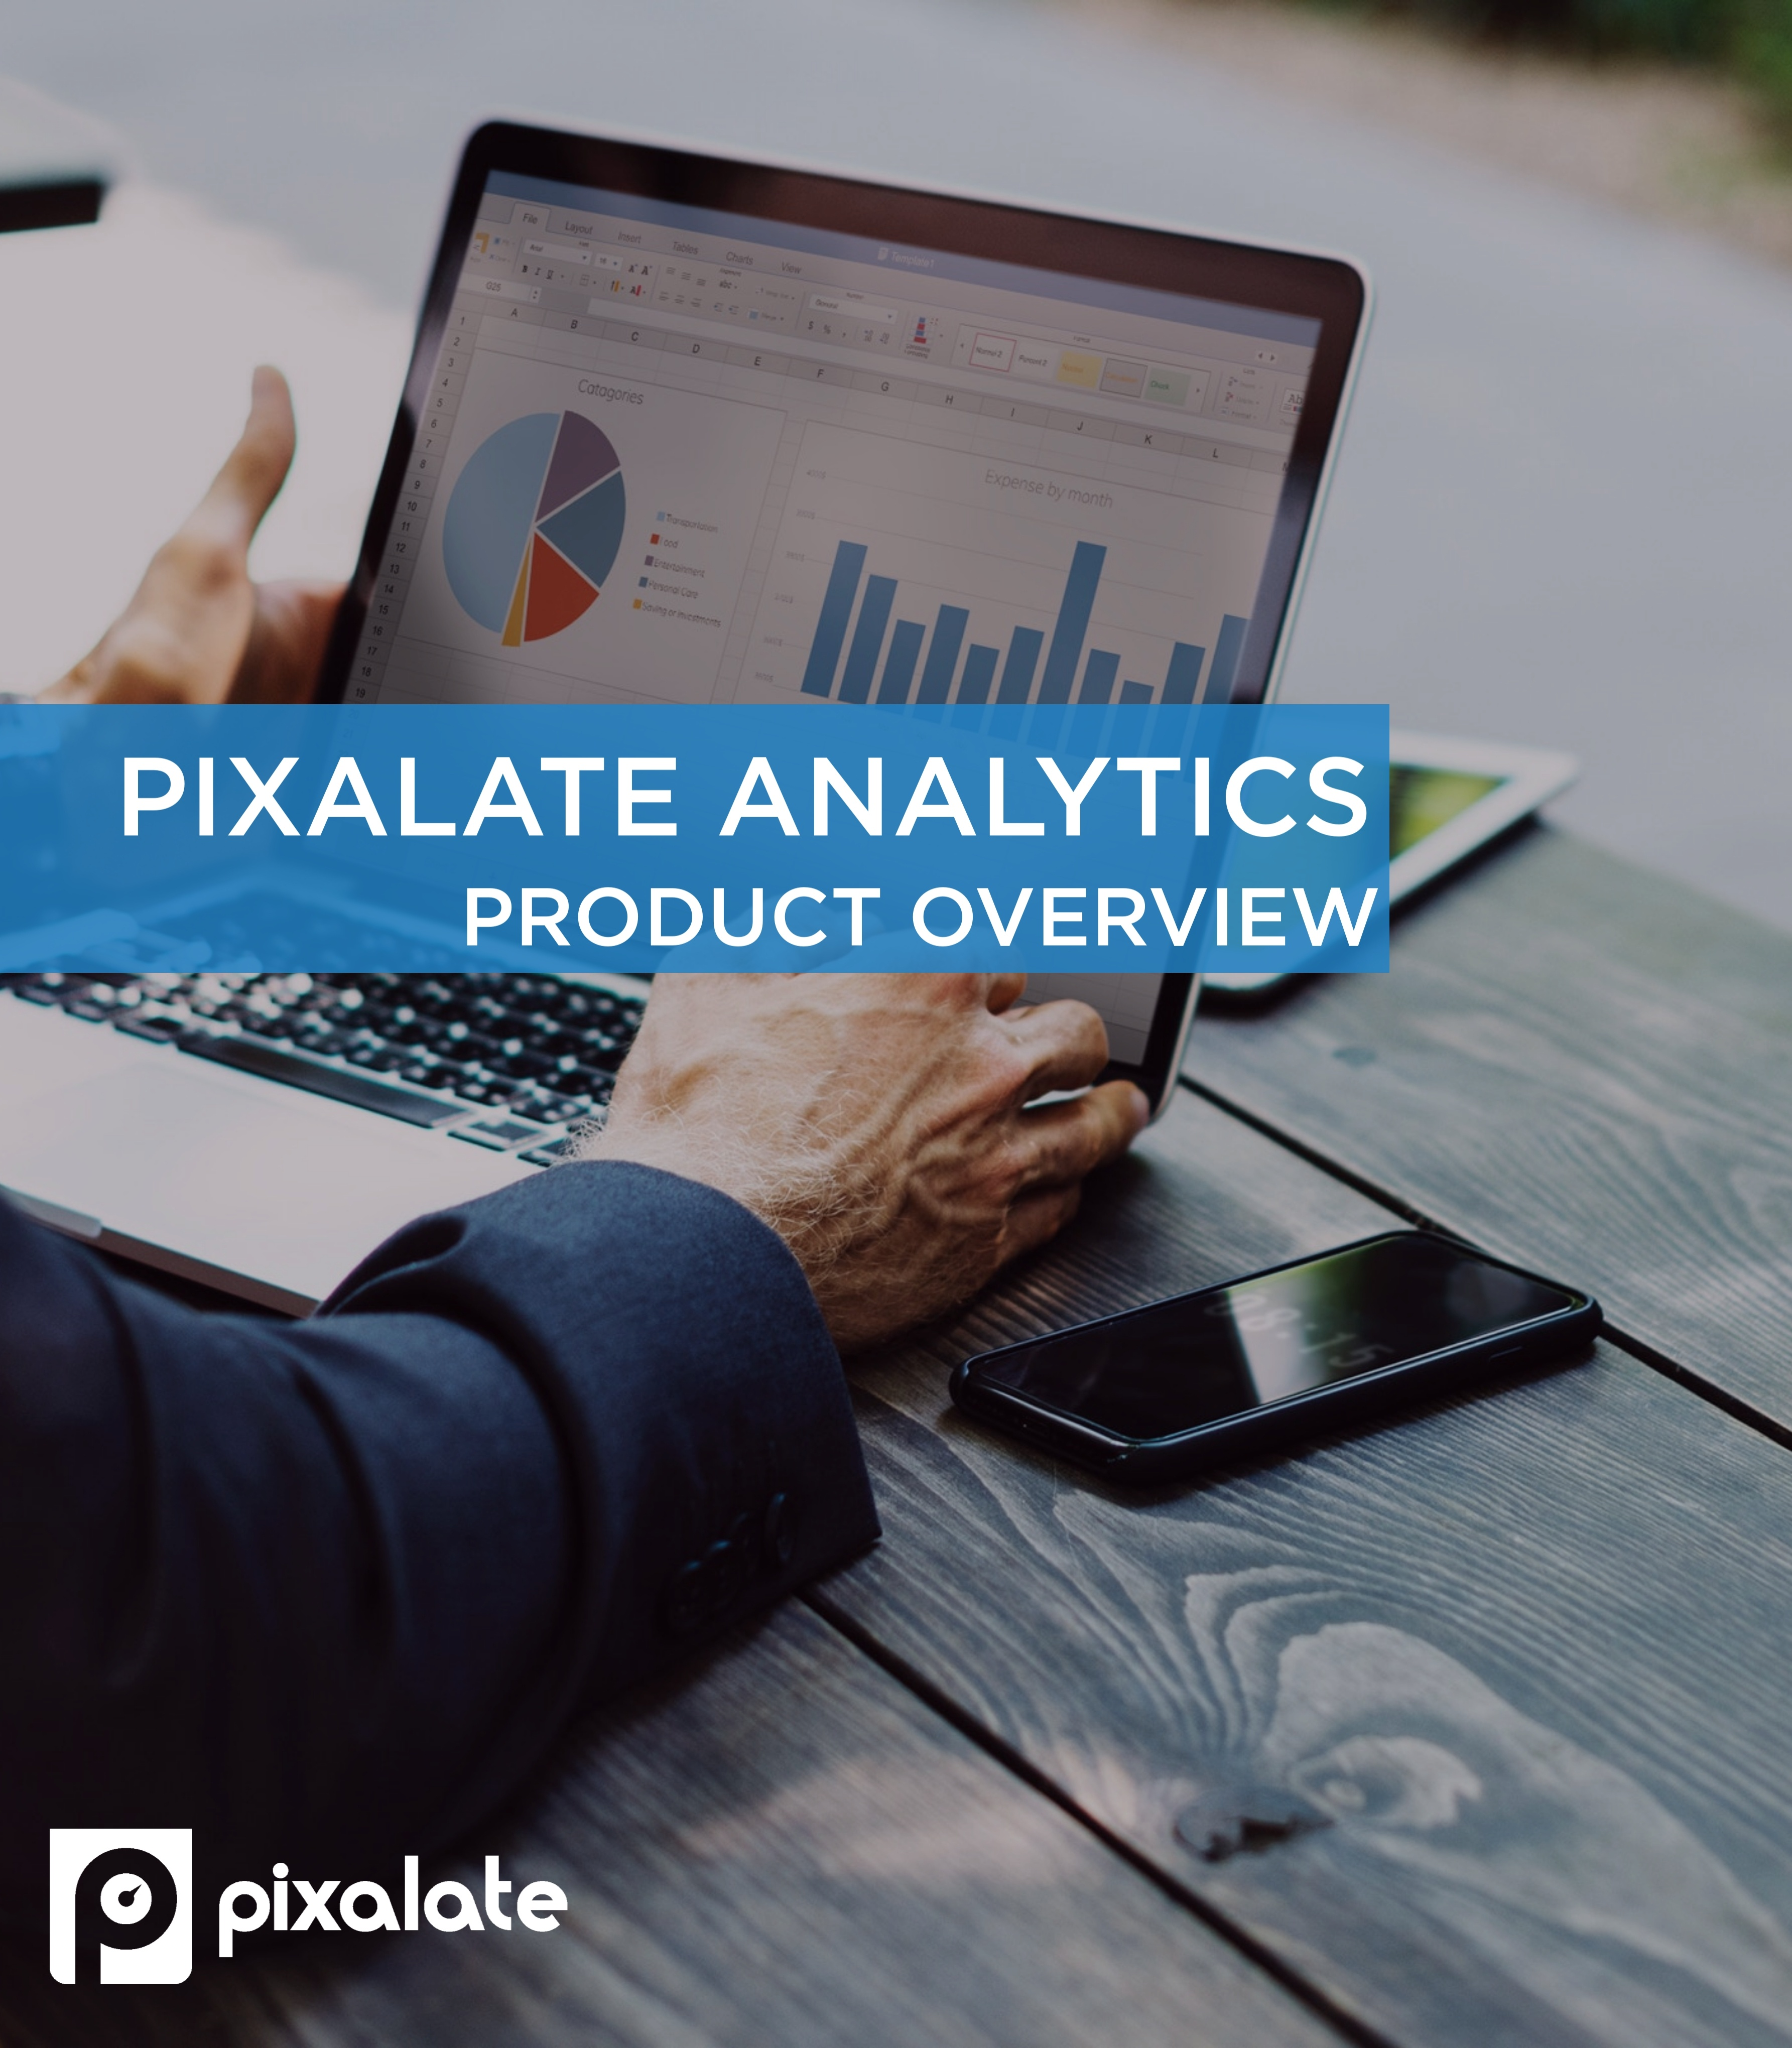 pixalate-analytics-product-overview (1)